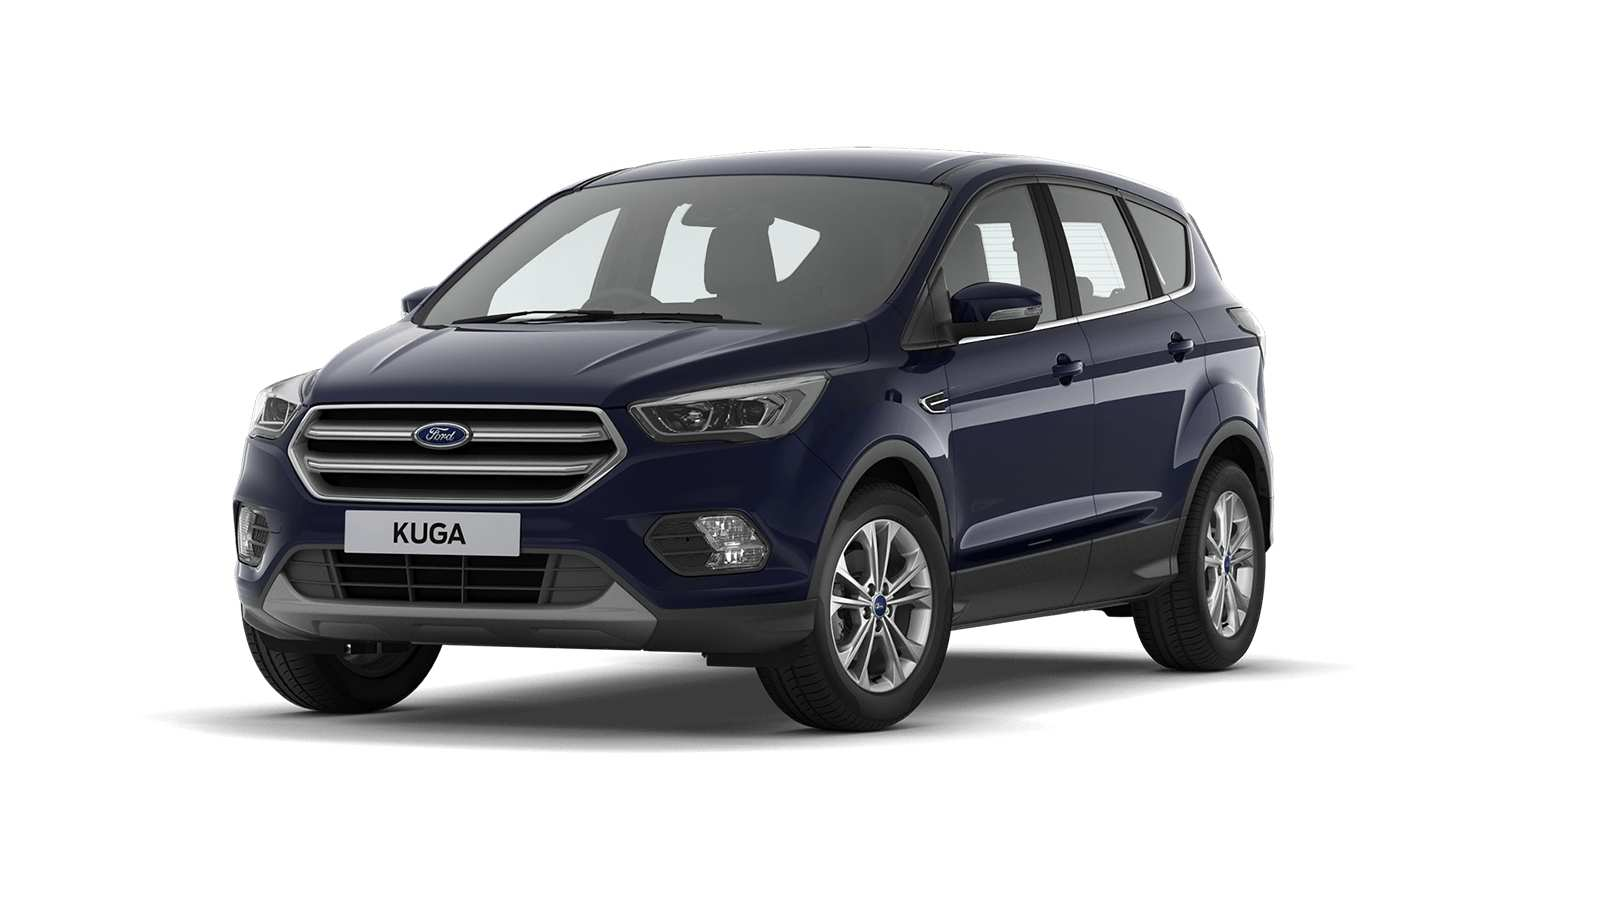 91 Concept of Best Ford Kuga 2019 Review And Release Date Configurations with Best Ford Kuga 2019 Review And Release Date